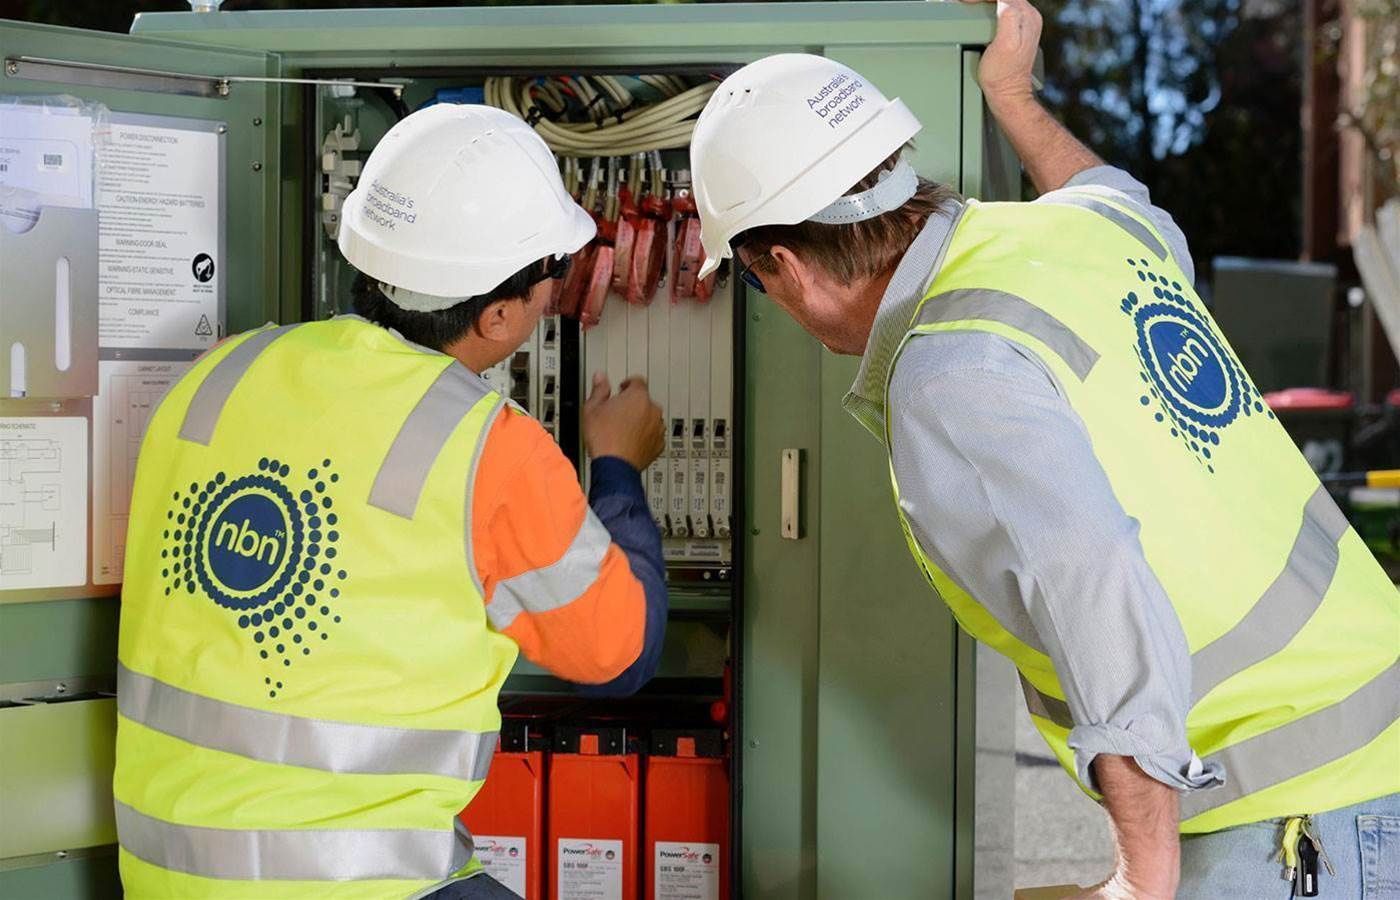 How NBN Co's ICT partner program will work